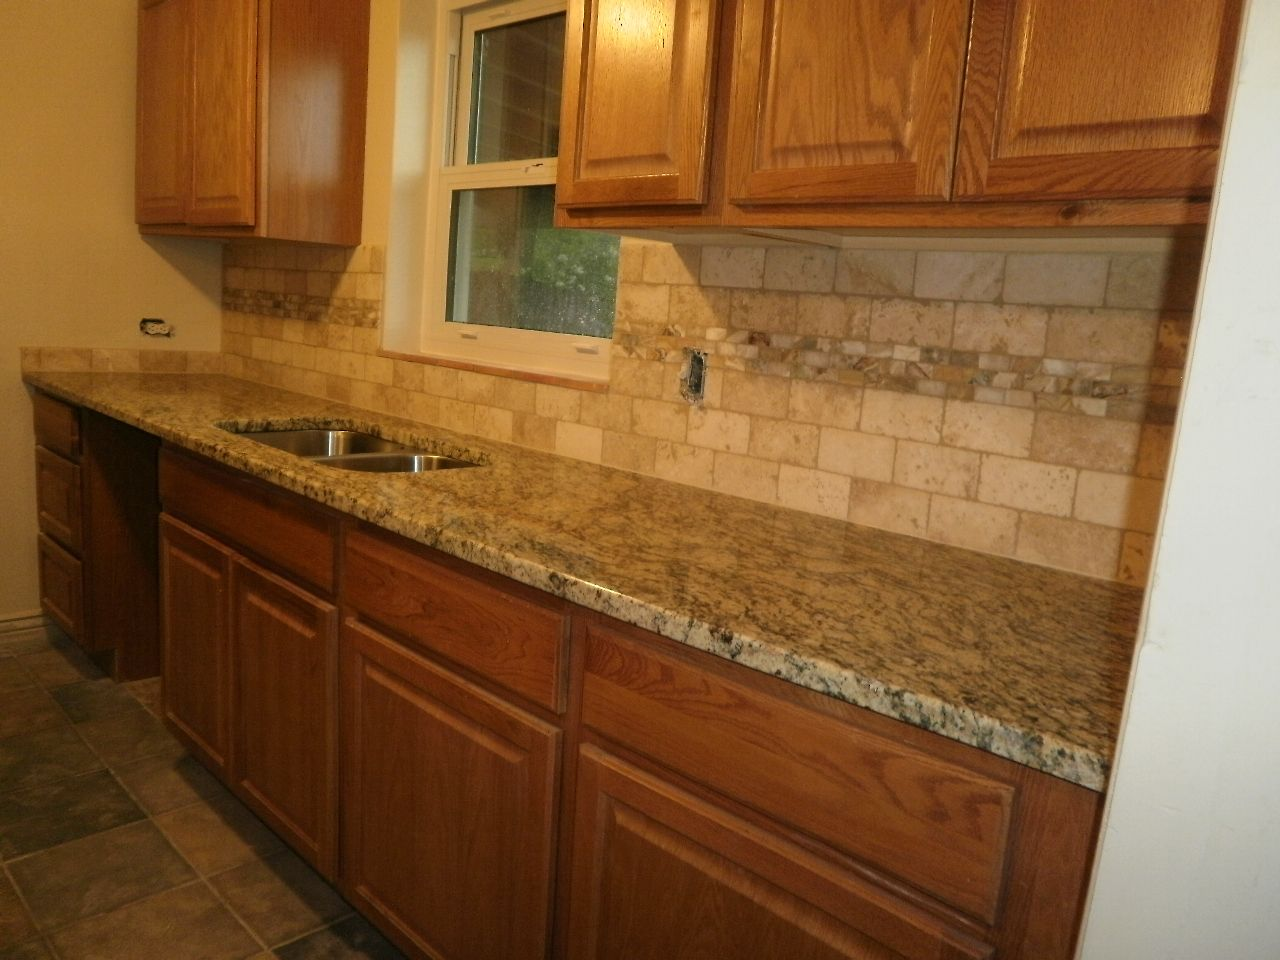 Just Completed 3x6 Tumbled Travertine Backsplash With A Honey